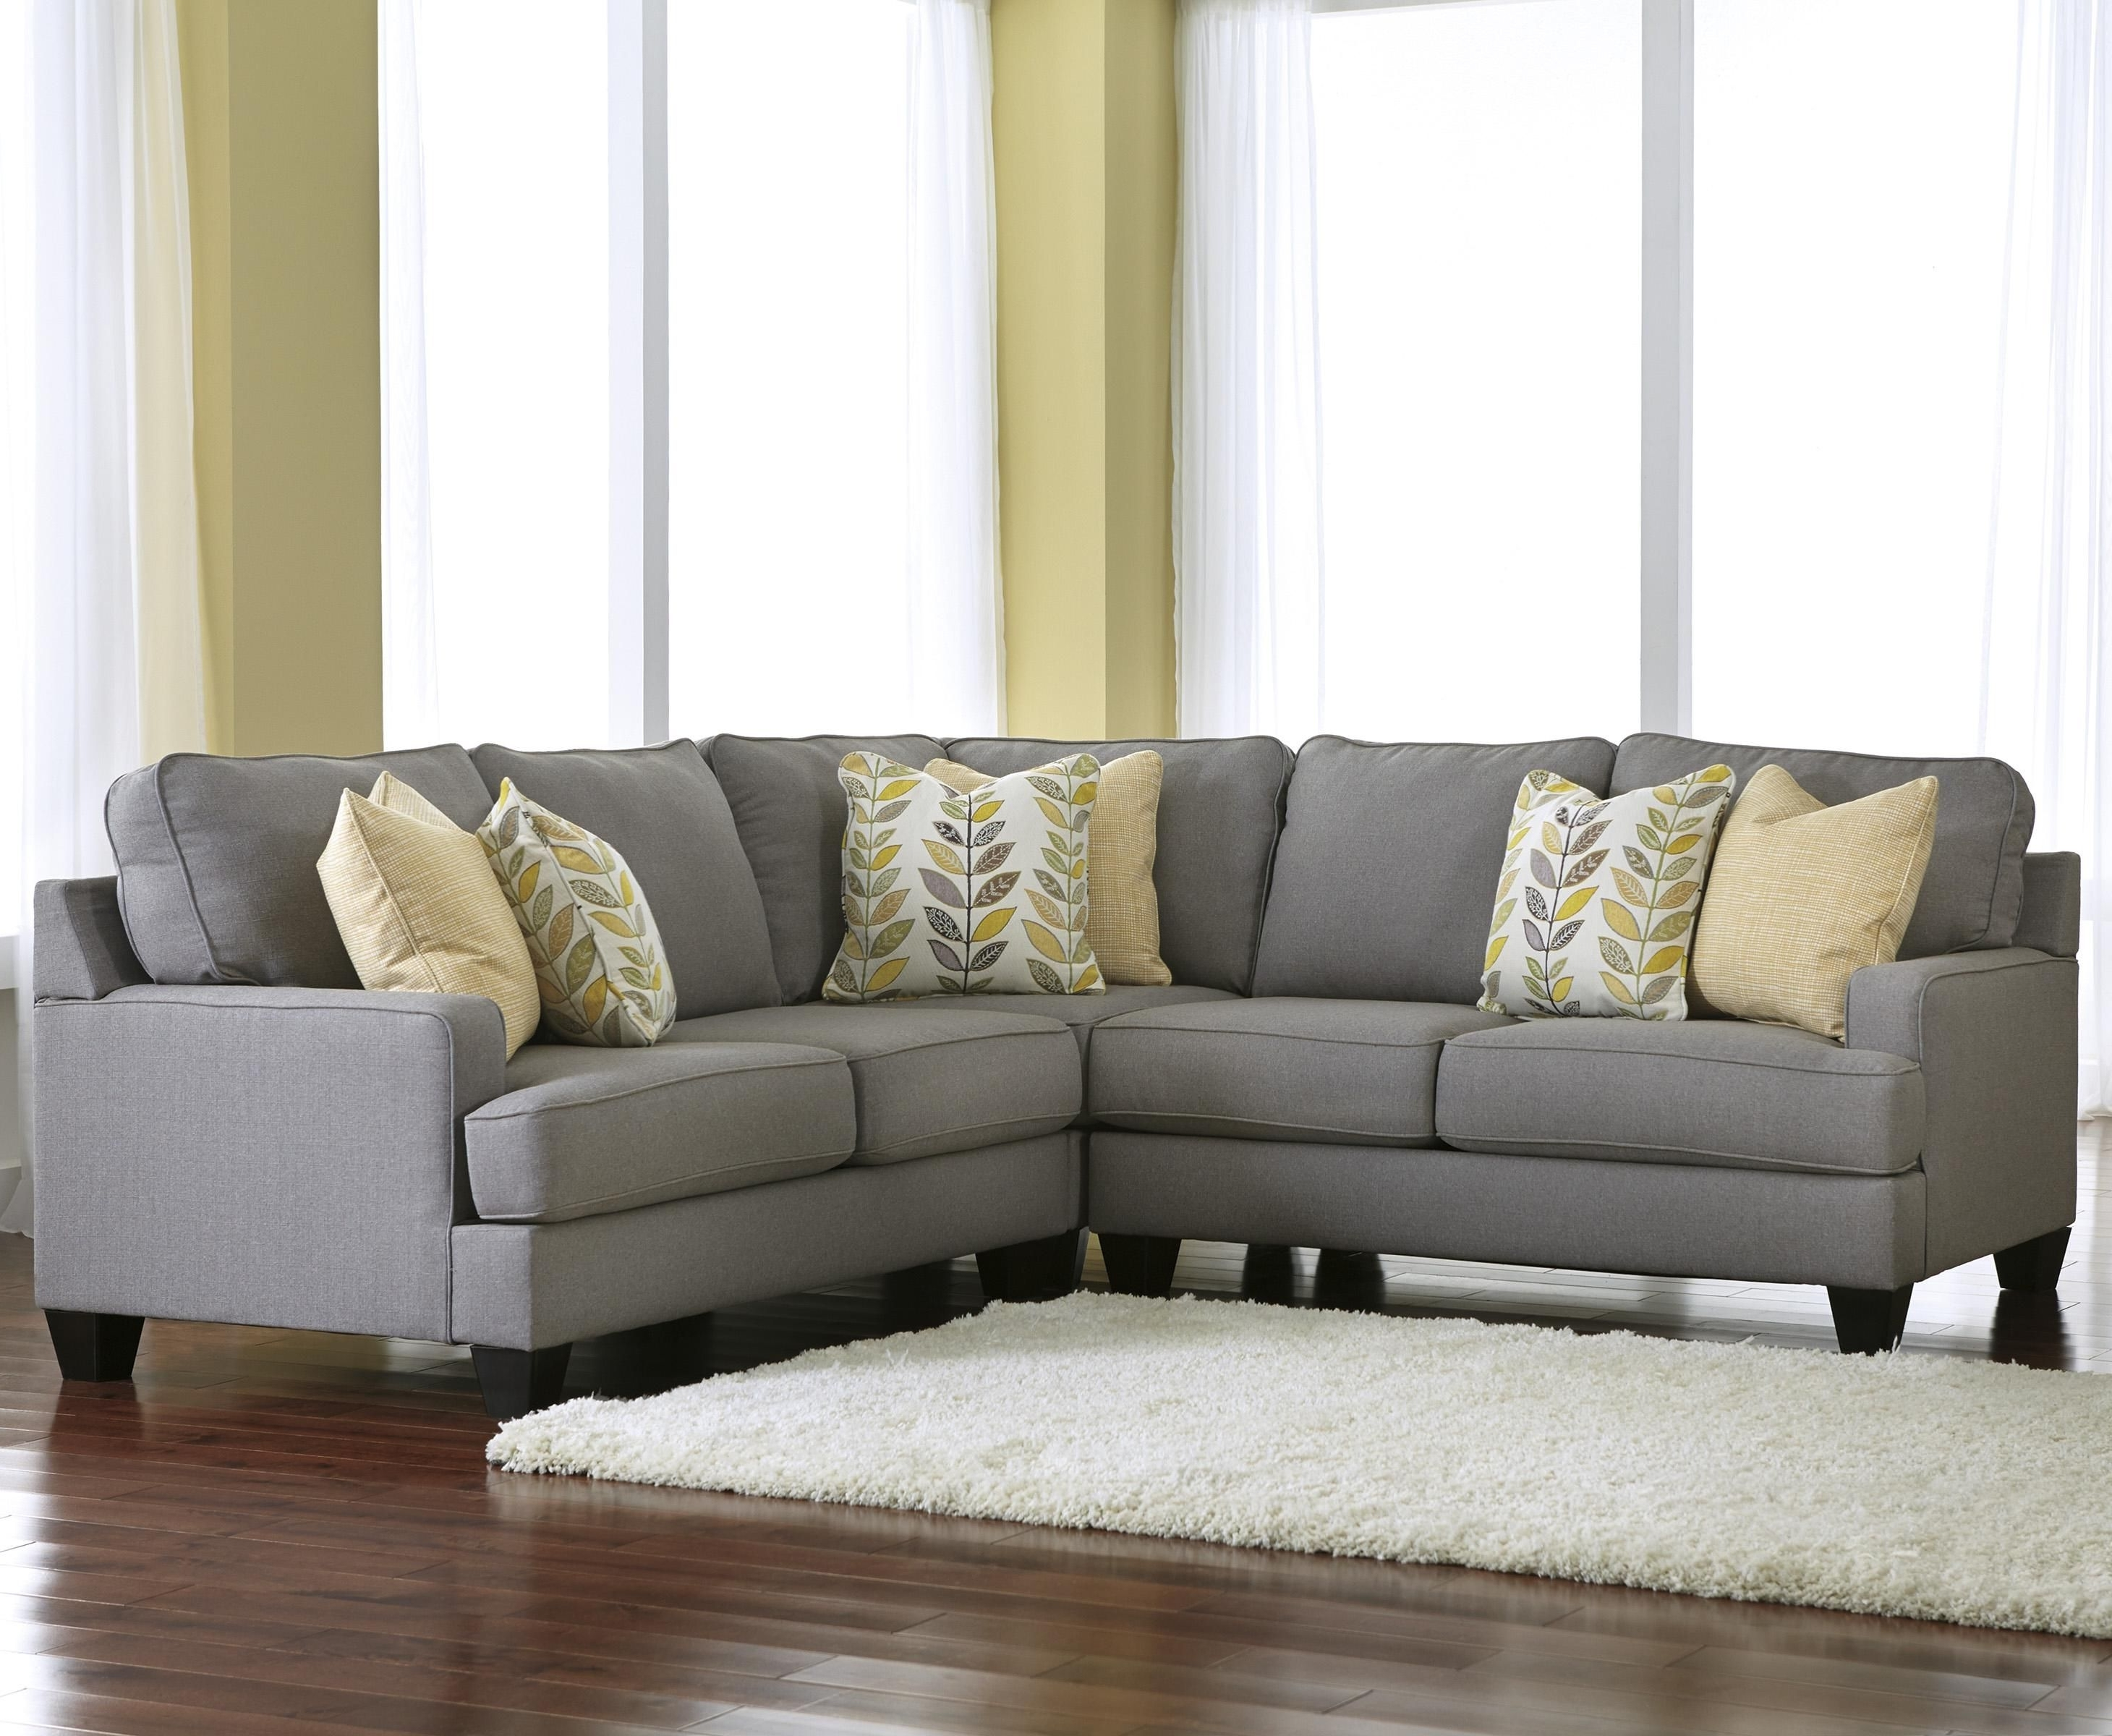 Well Liked Nova Scotia Sectional Sofas With Regard To Chamberly – Alloy Modern 3 Piece Corner Sectional Sofa With (View 7 of 15)